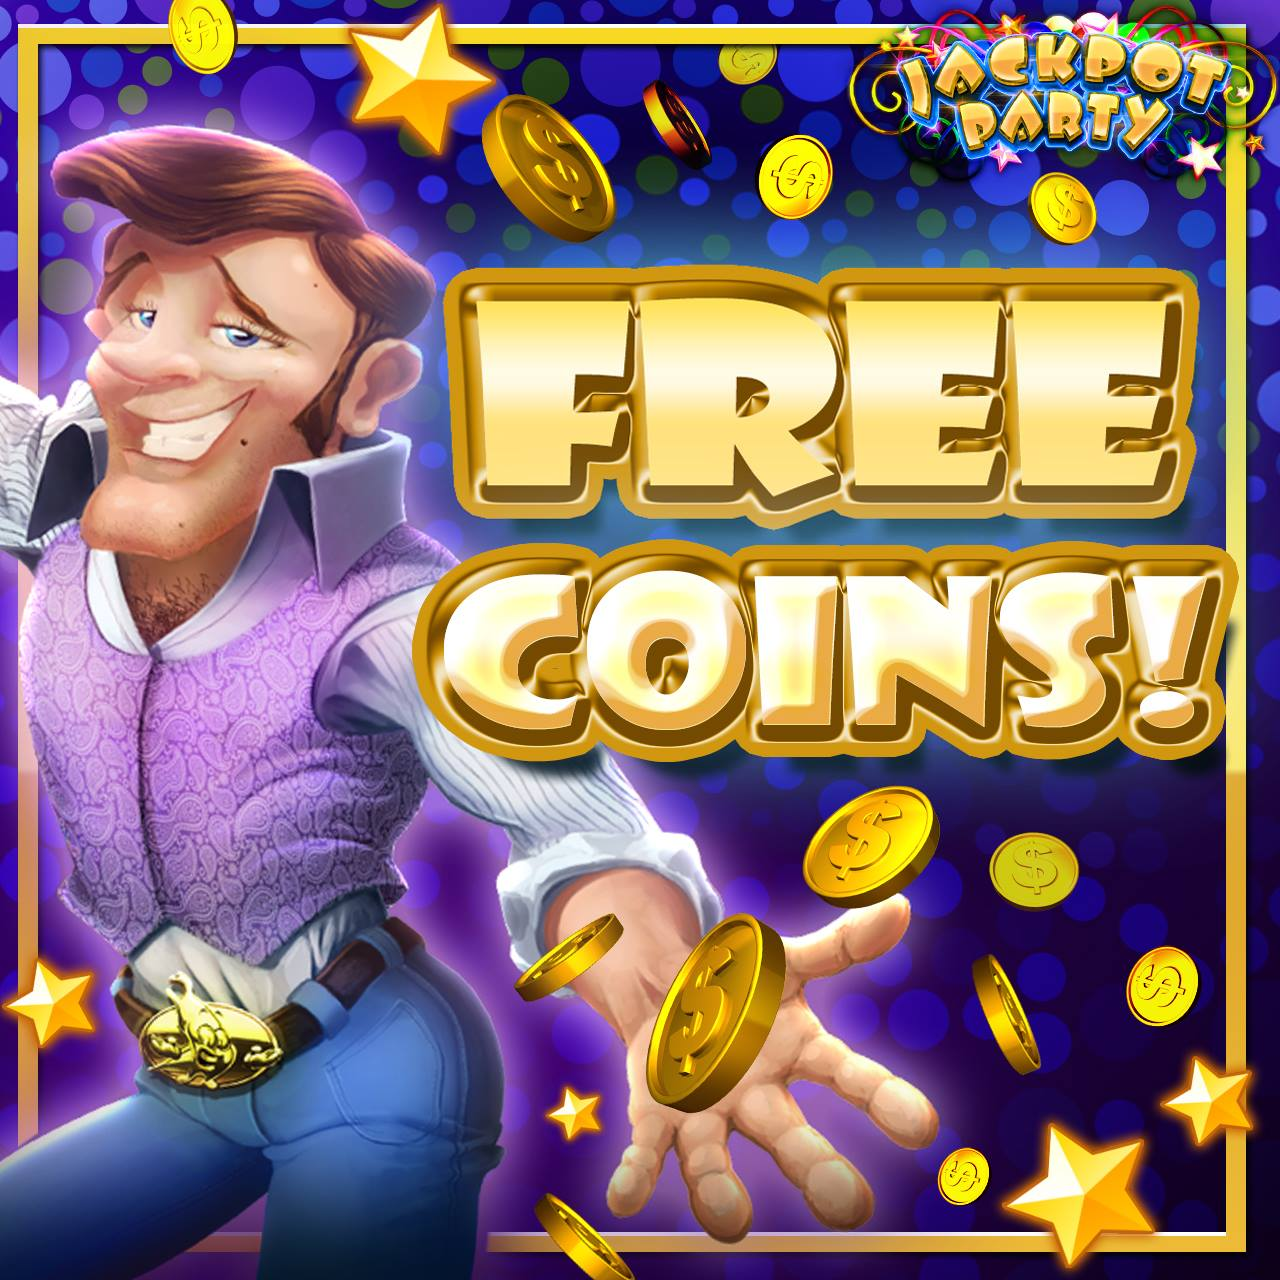 jackpot party casino facebook promo codes